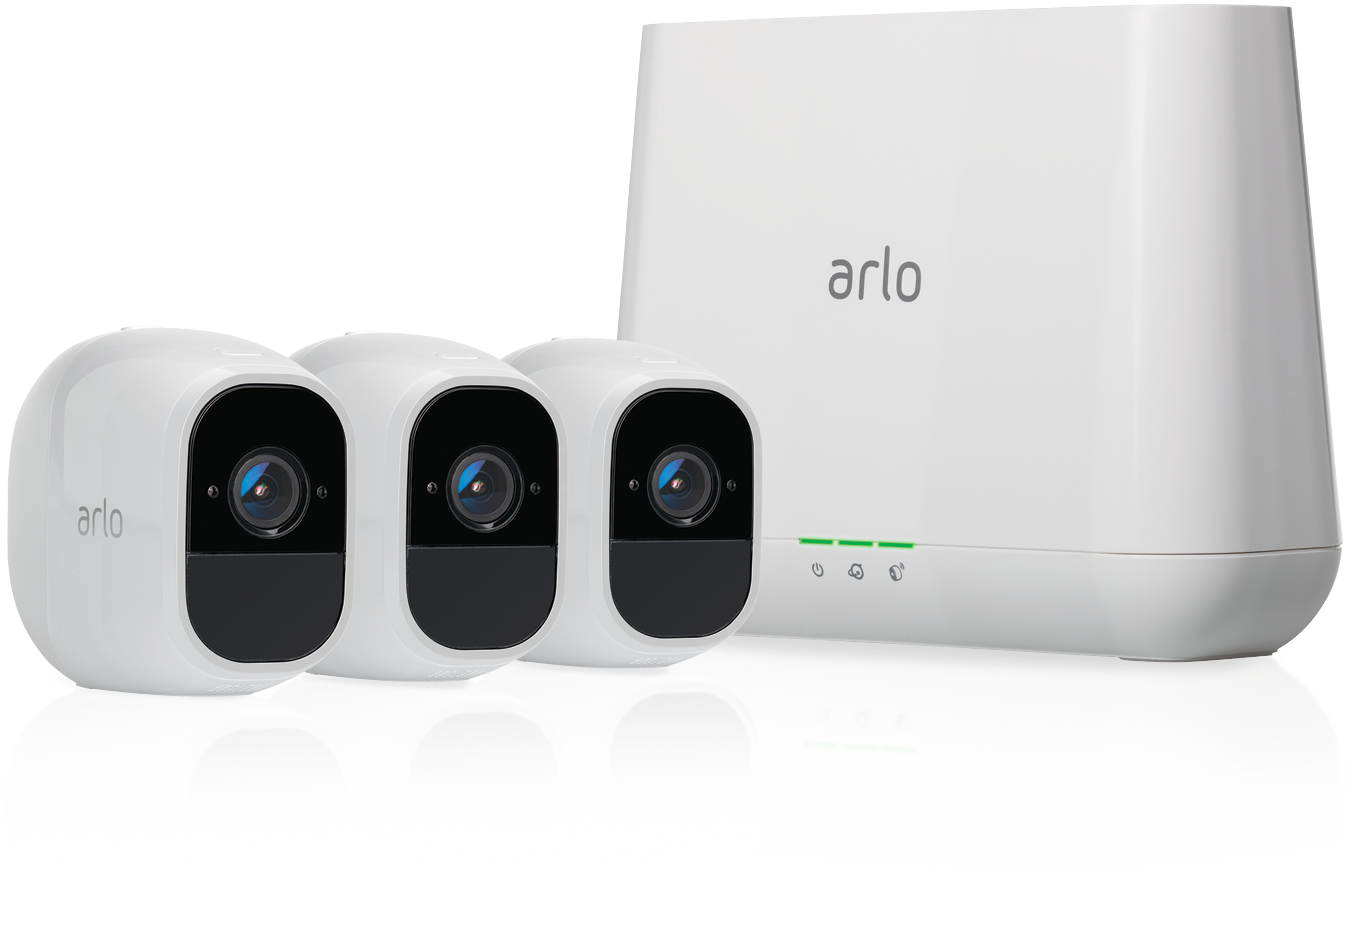 Netgear Arlo Pro 2 Smart Security System with 3 Cameras VMS4330P-100EUS